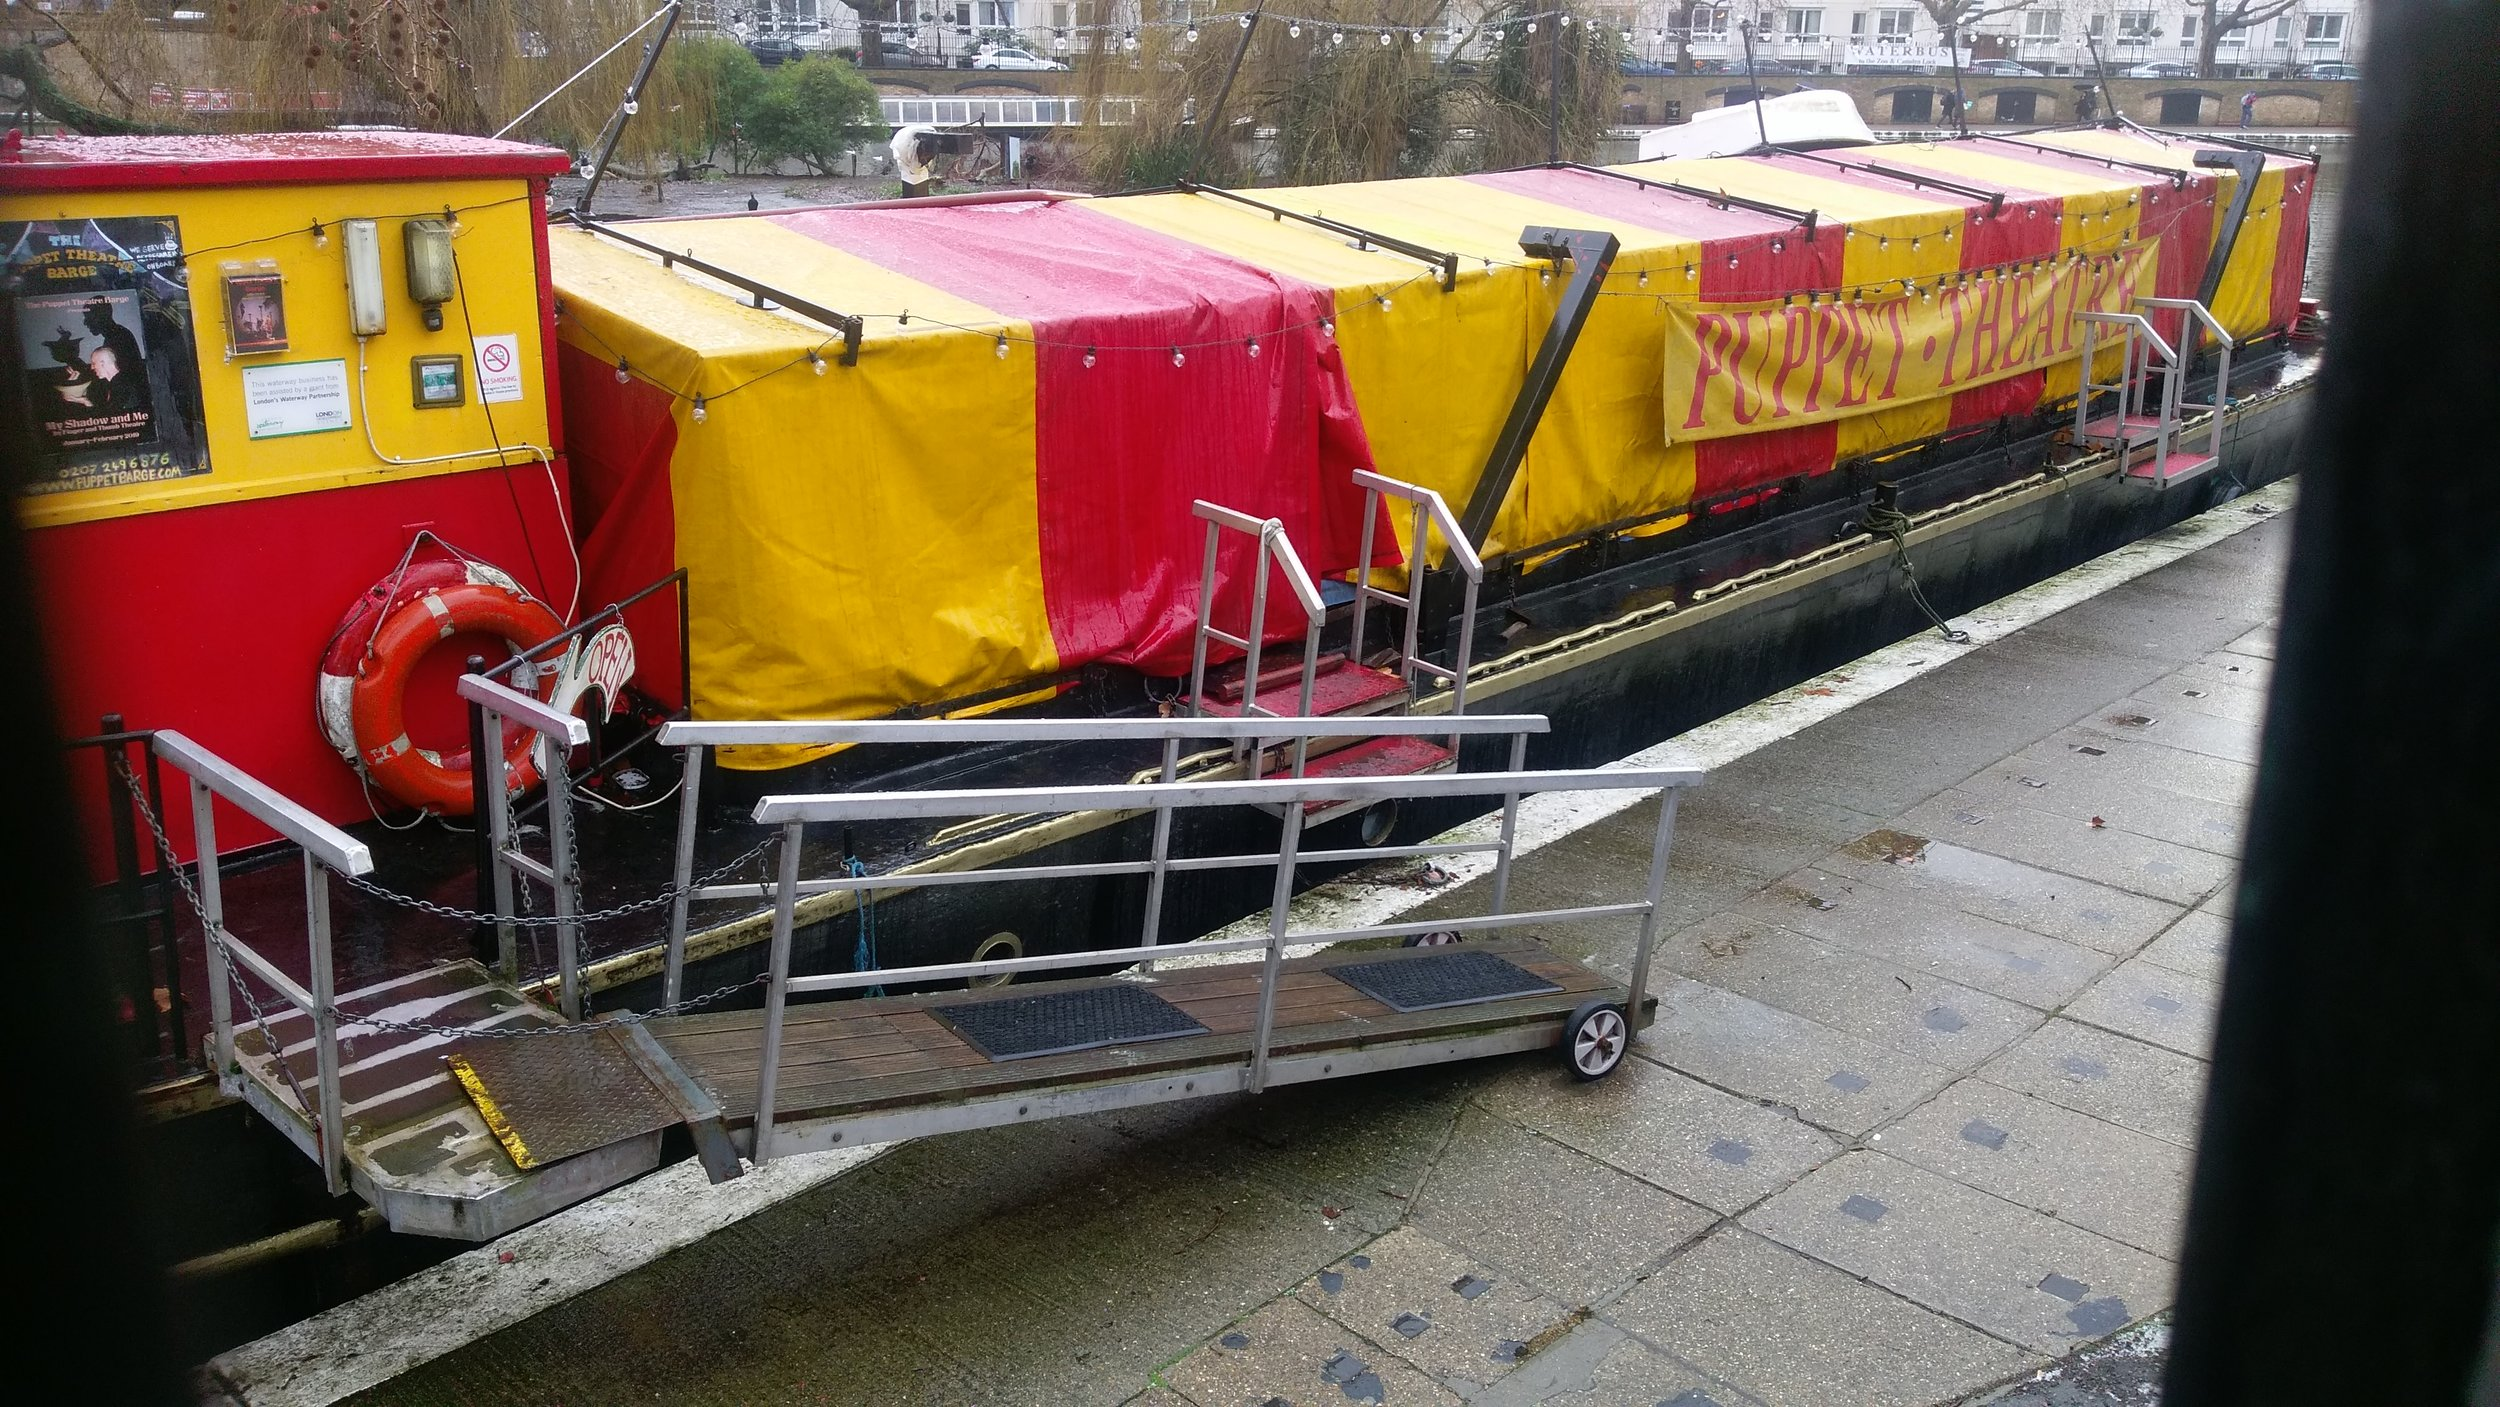 Puppet Theatre Barge - visited 28/01/2019